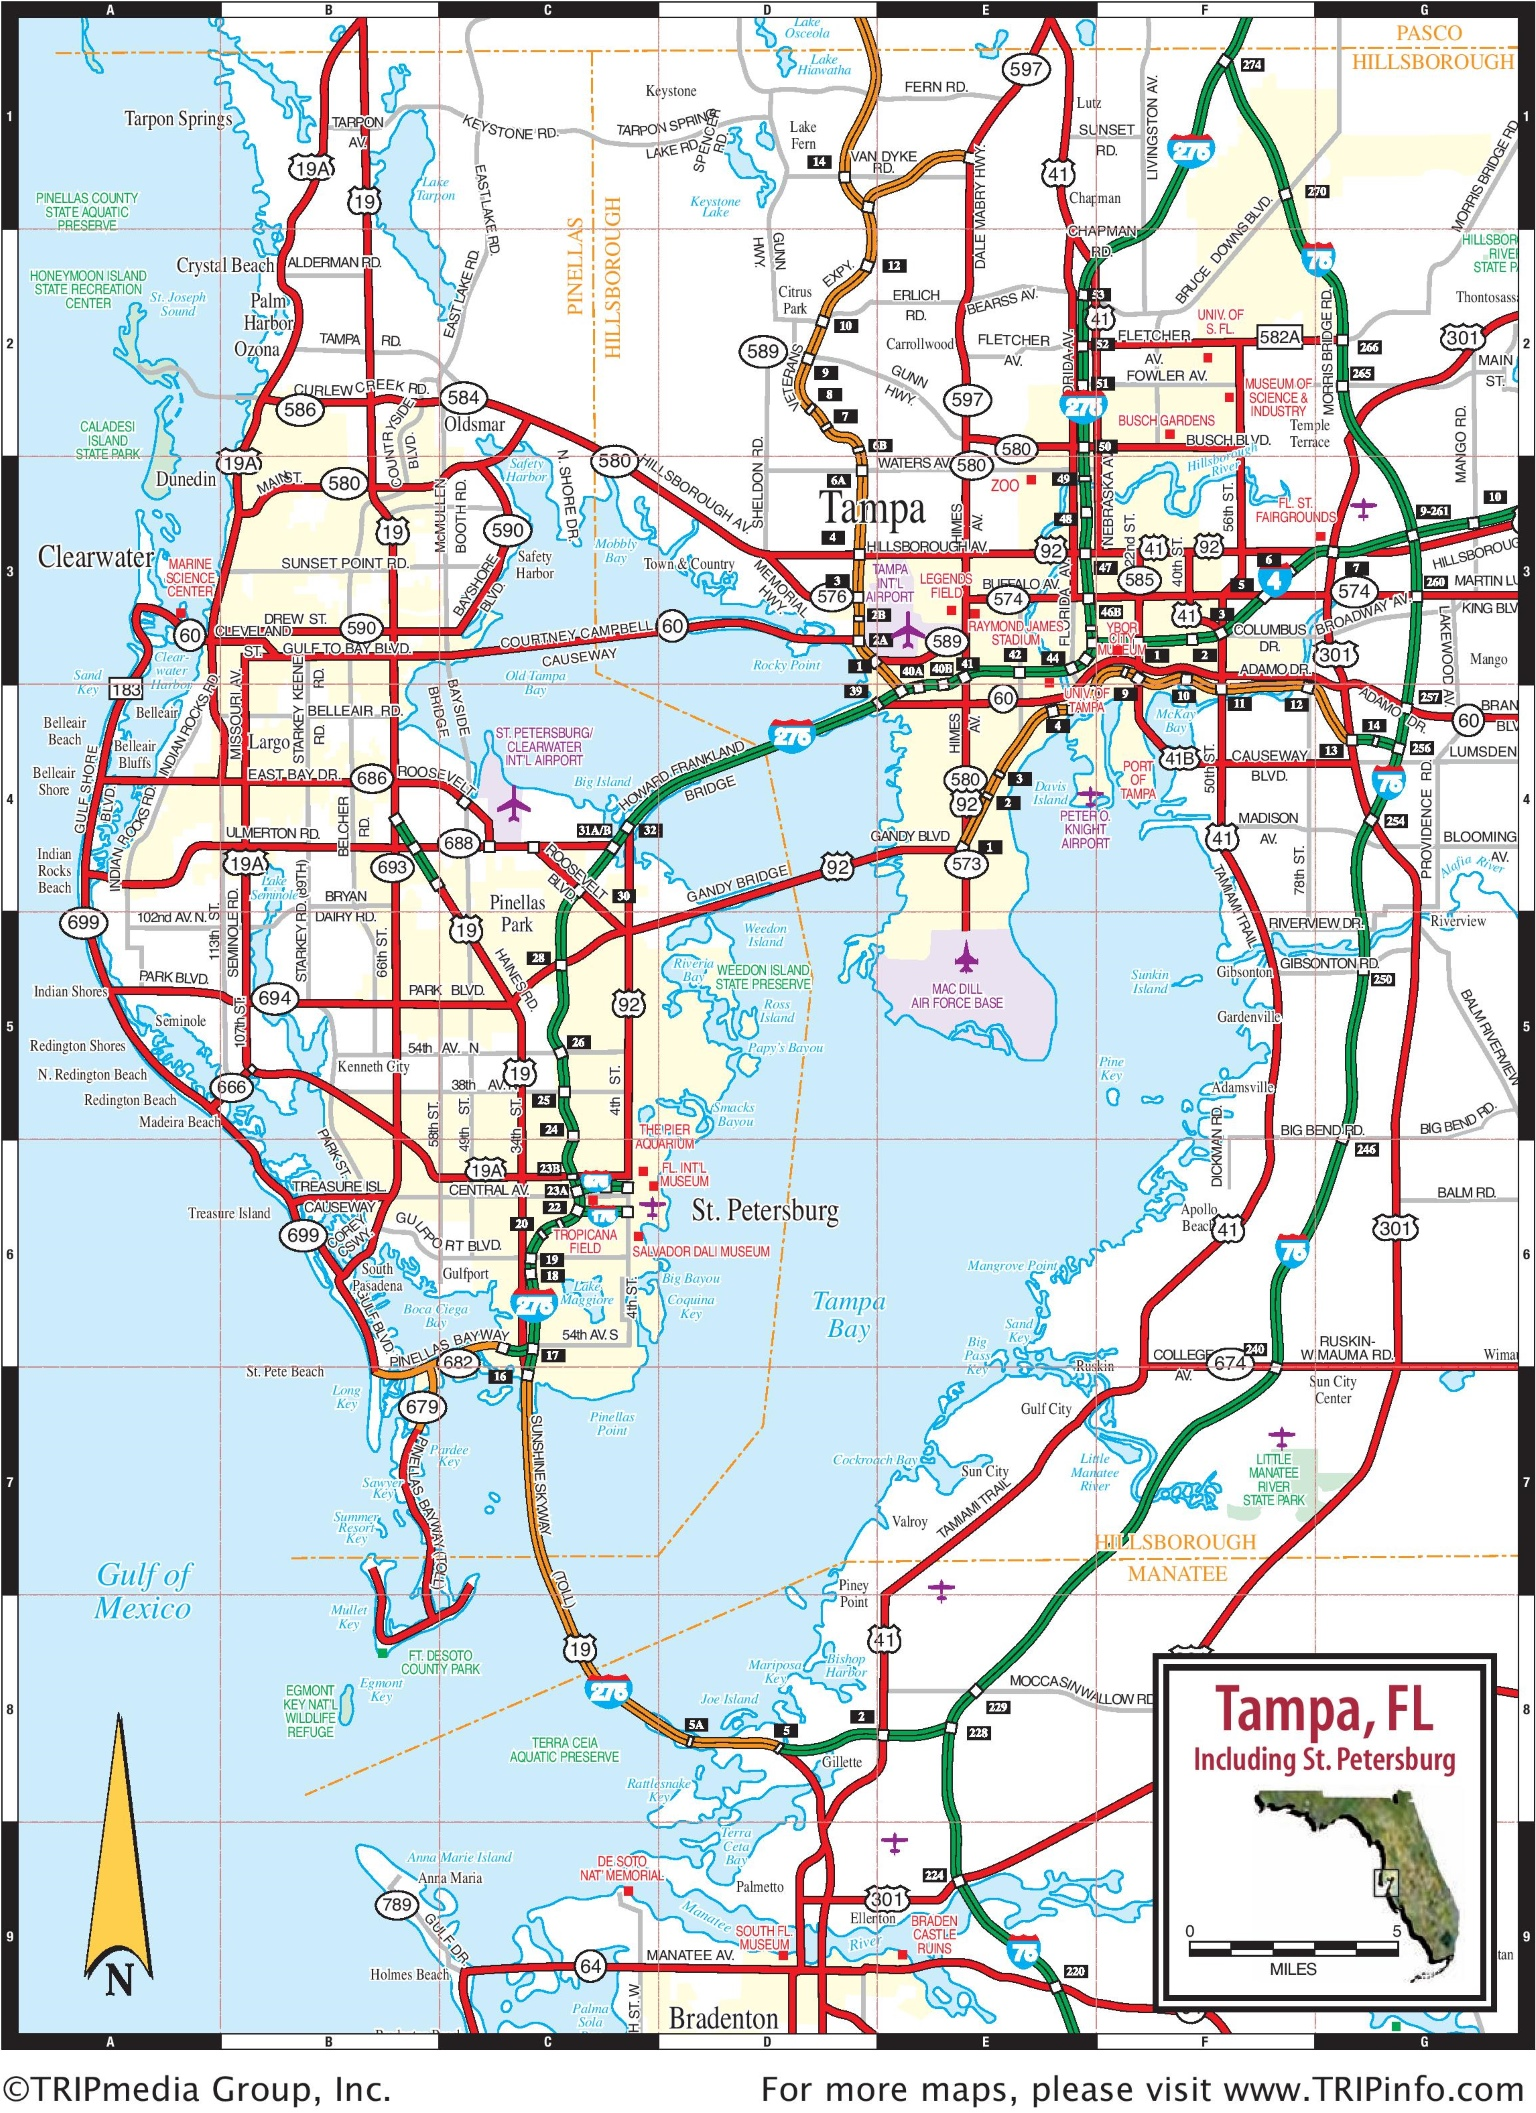 Tampa area road map